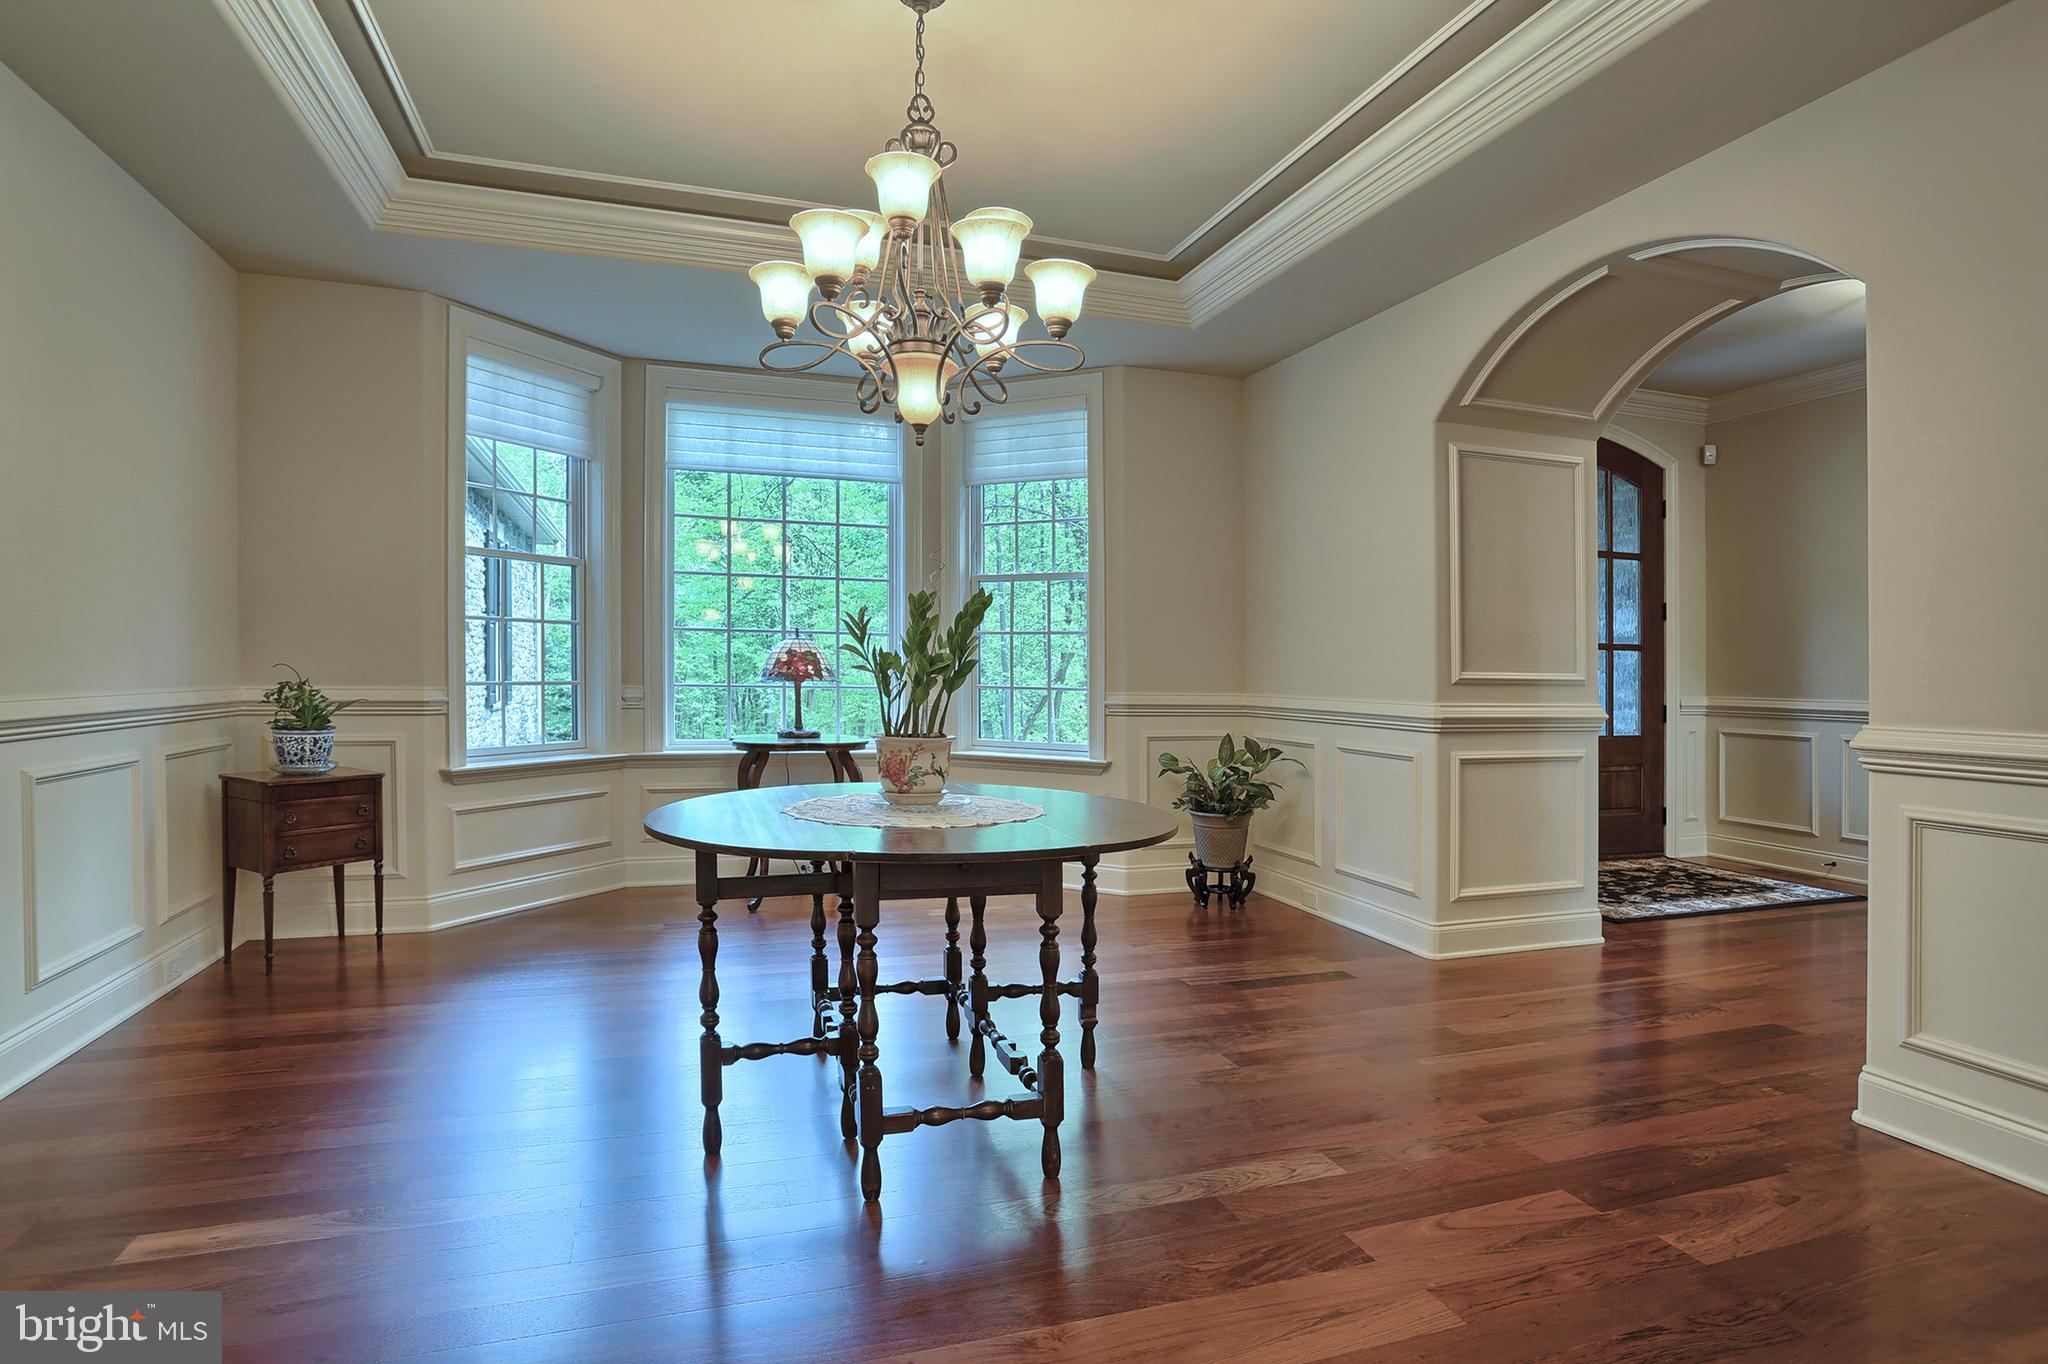 ~14x16 formal dining room too